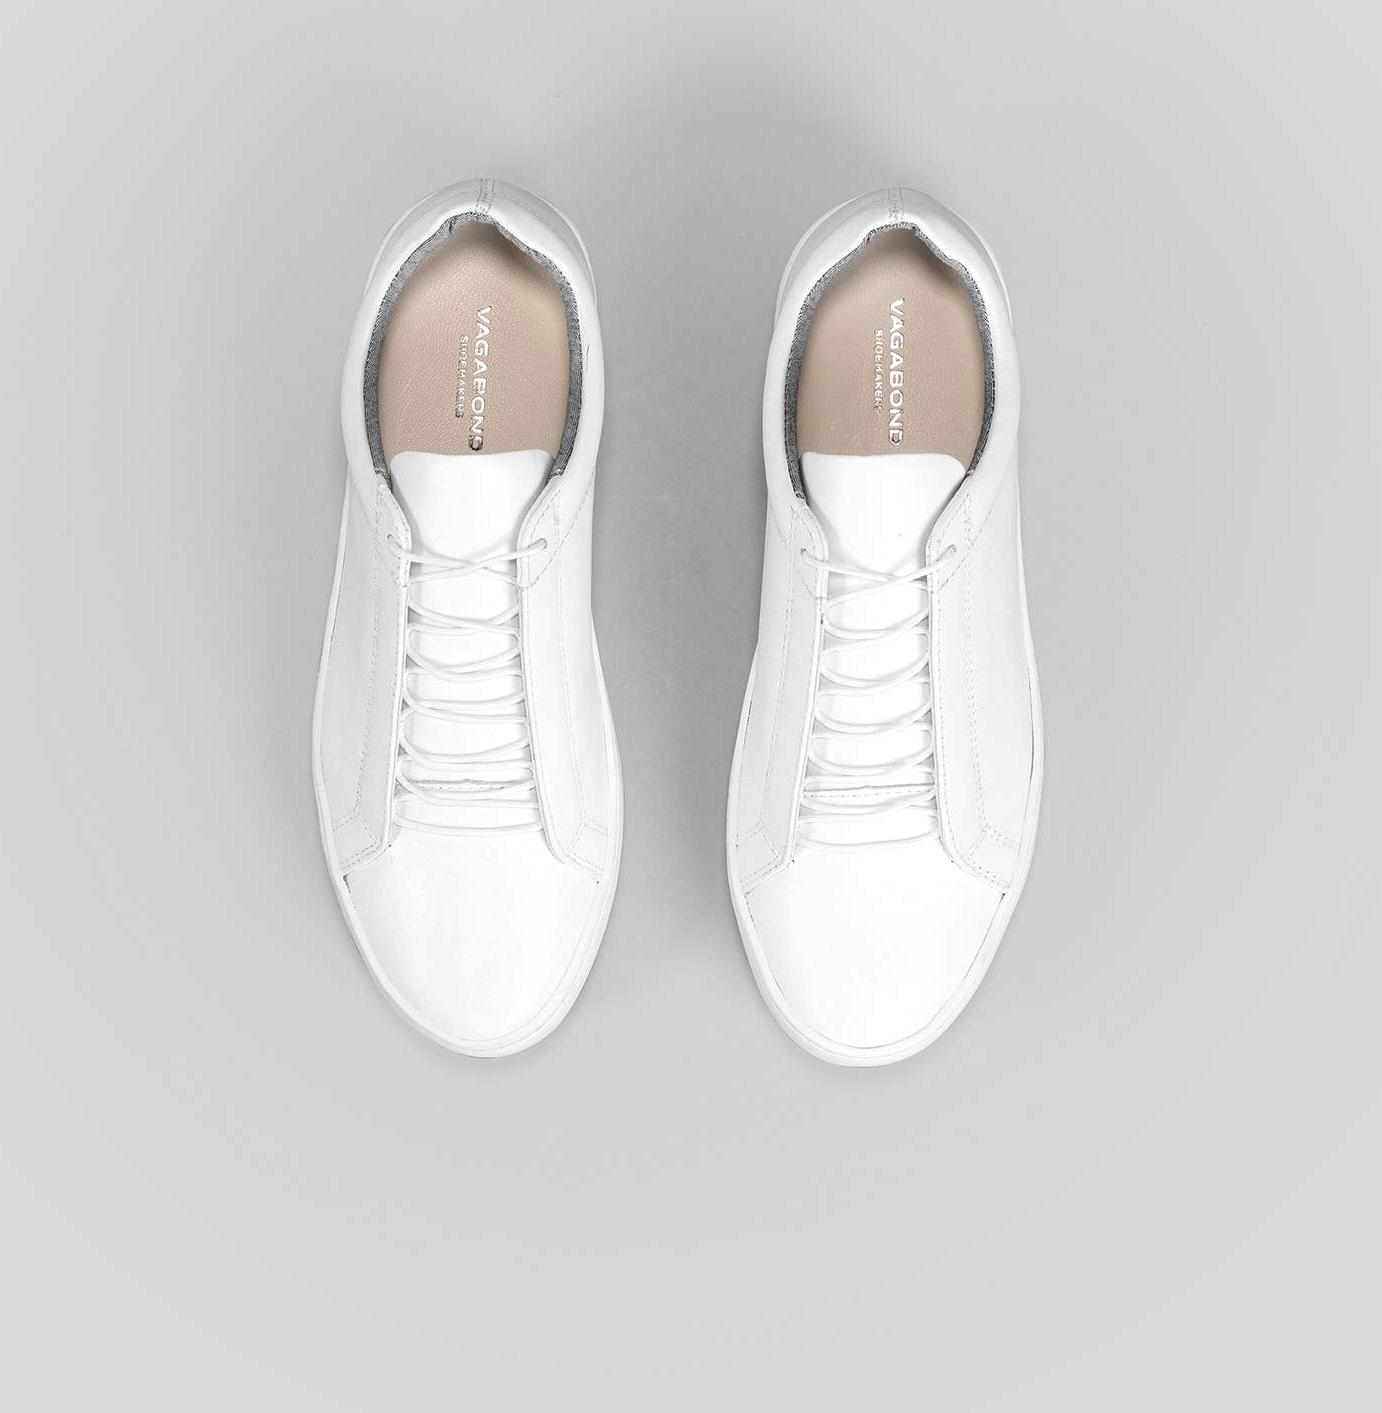 smooth leather hidden lace trainer 4326